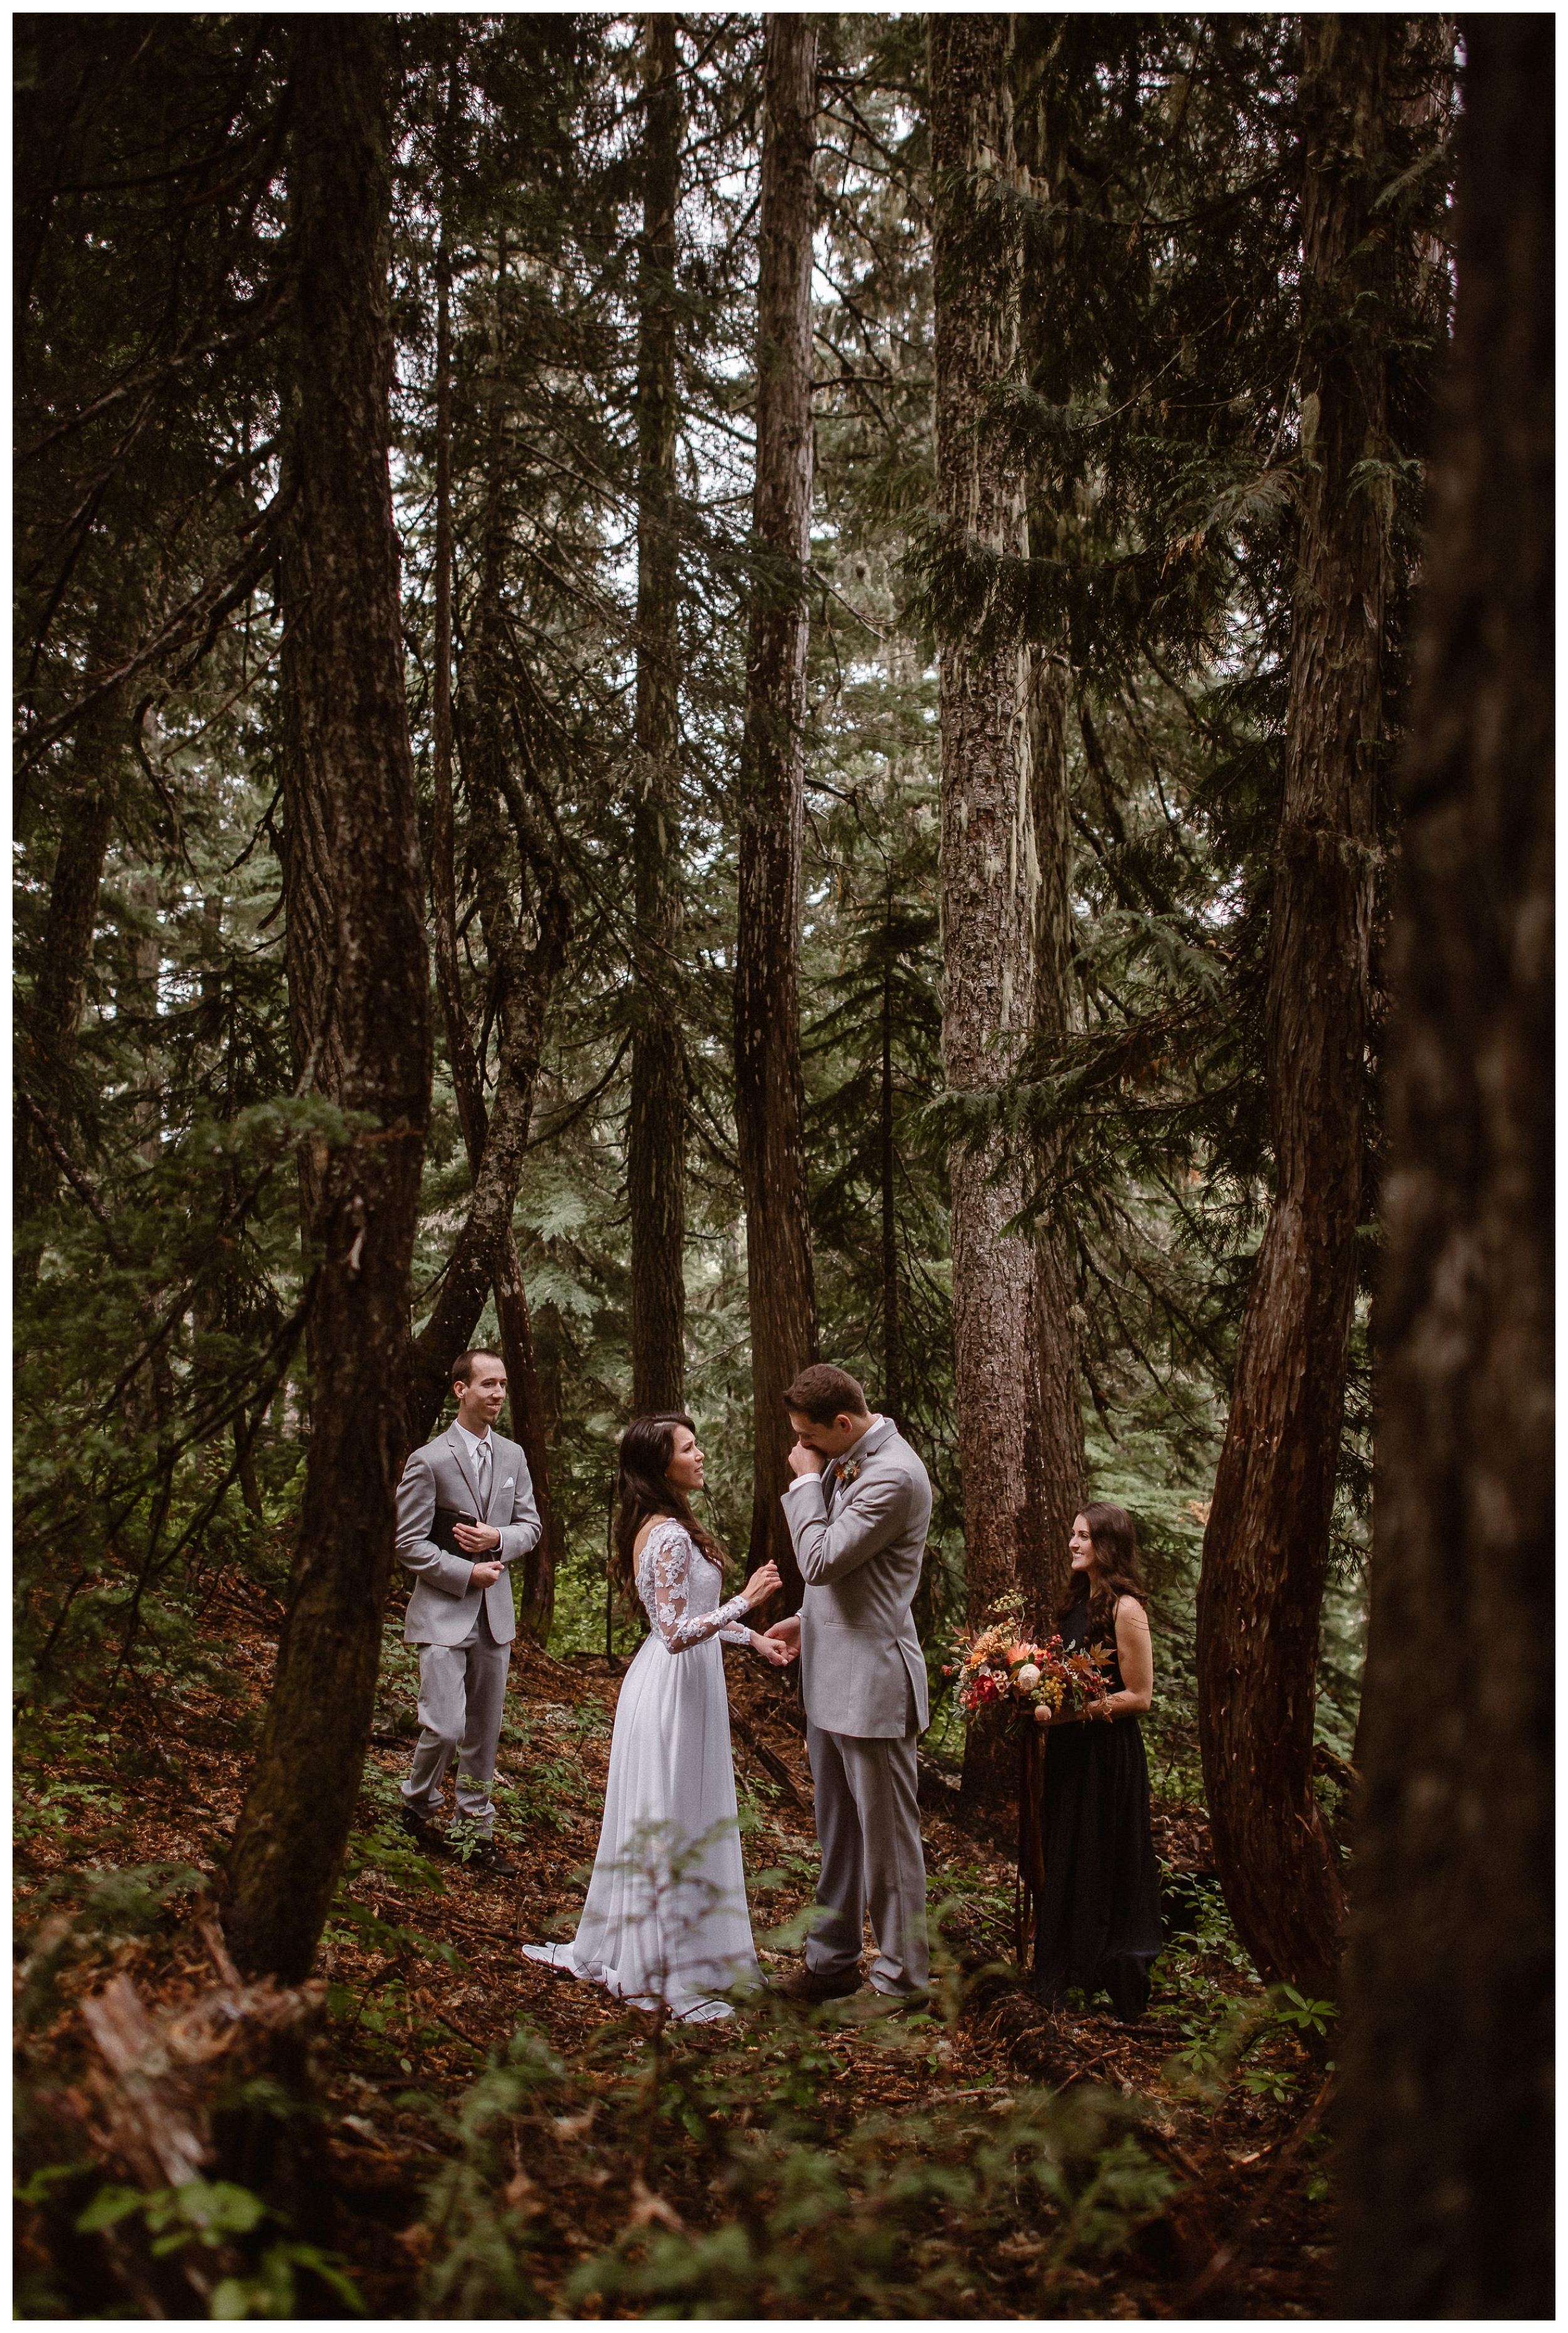 Rangefinder-Top-Wedding-Photographers-Adventure-Instead-Maddie-Mae-Destination-Elopement-Photography-Eloping-Photographers_0013.jpg